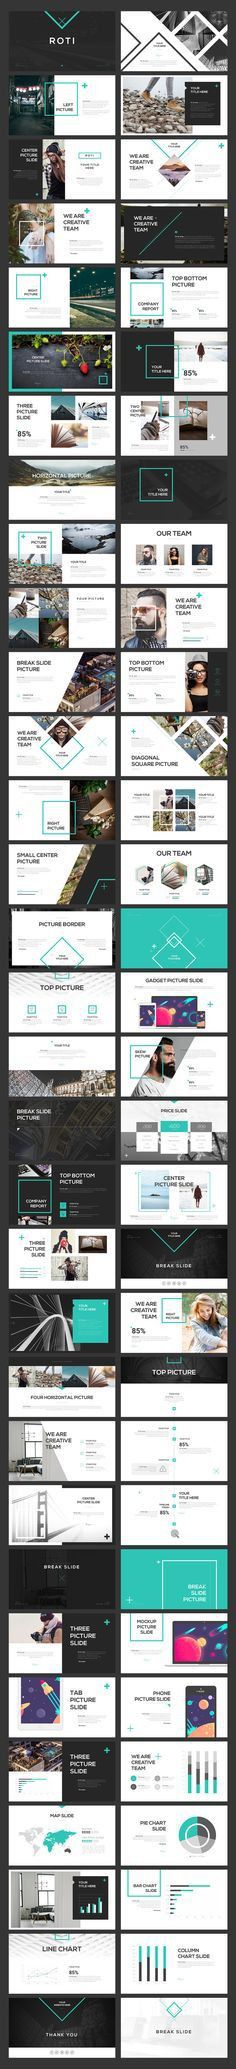 Aqua PowerPoint Template | Presentation templates, Powerpoint ...